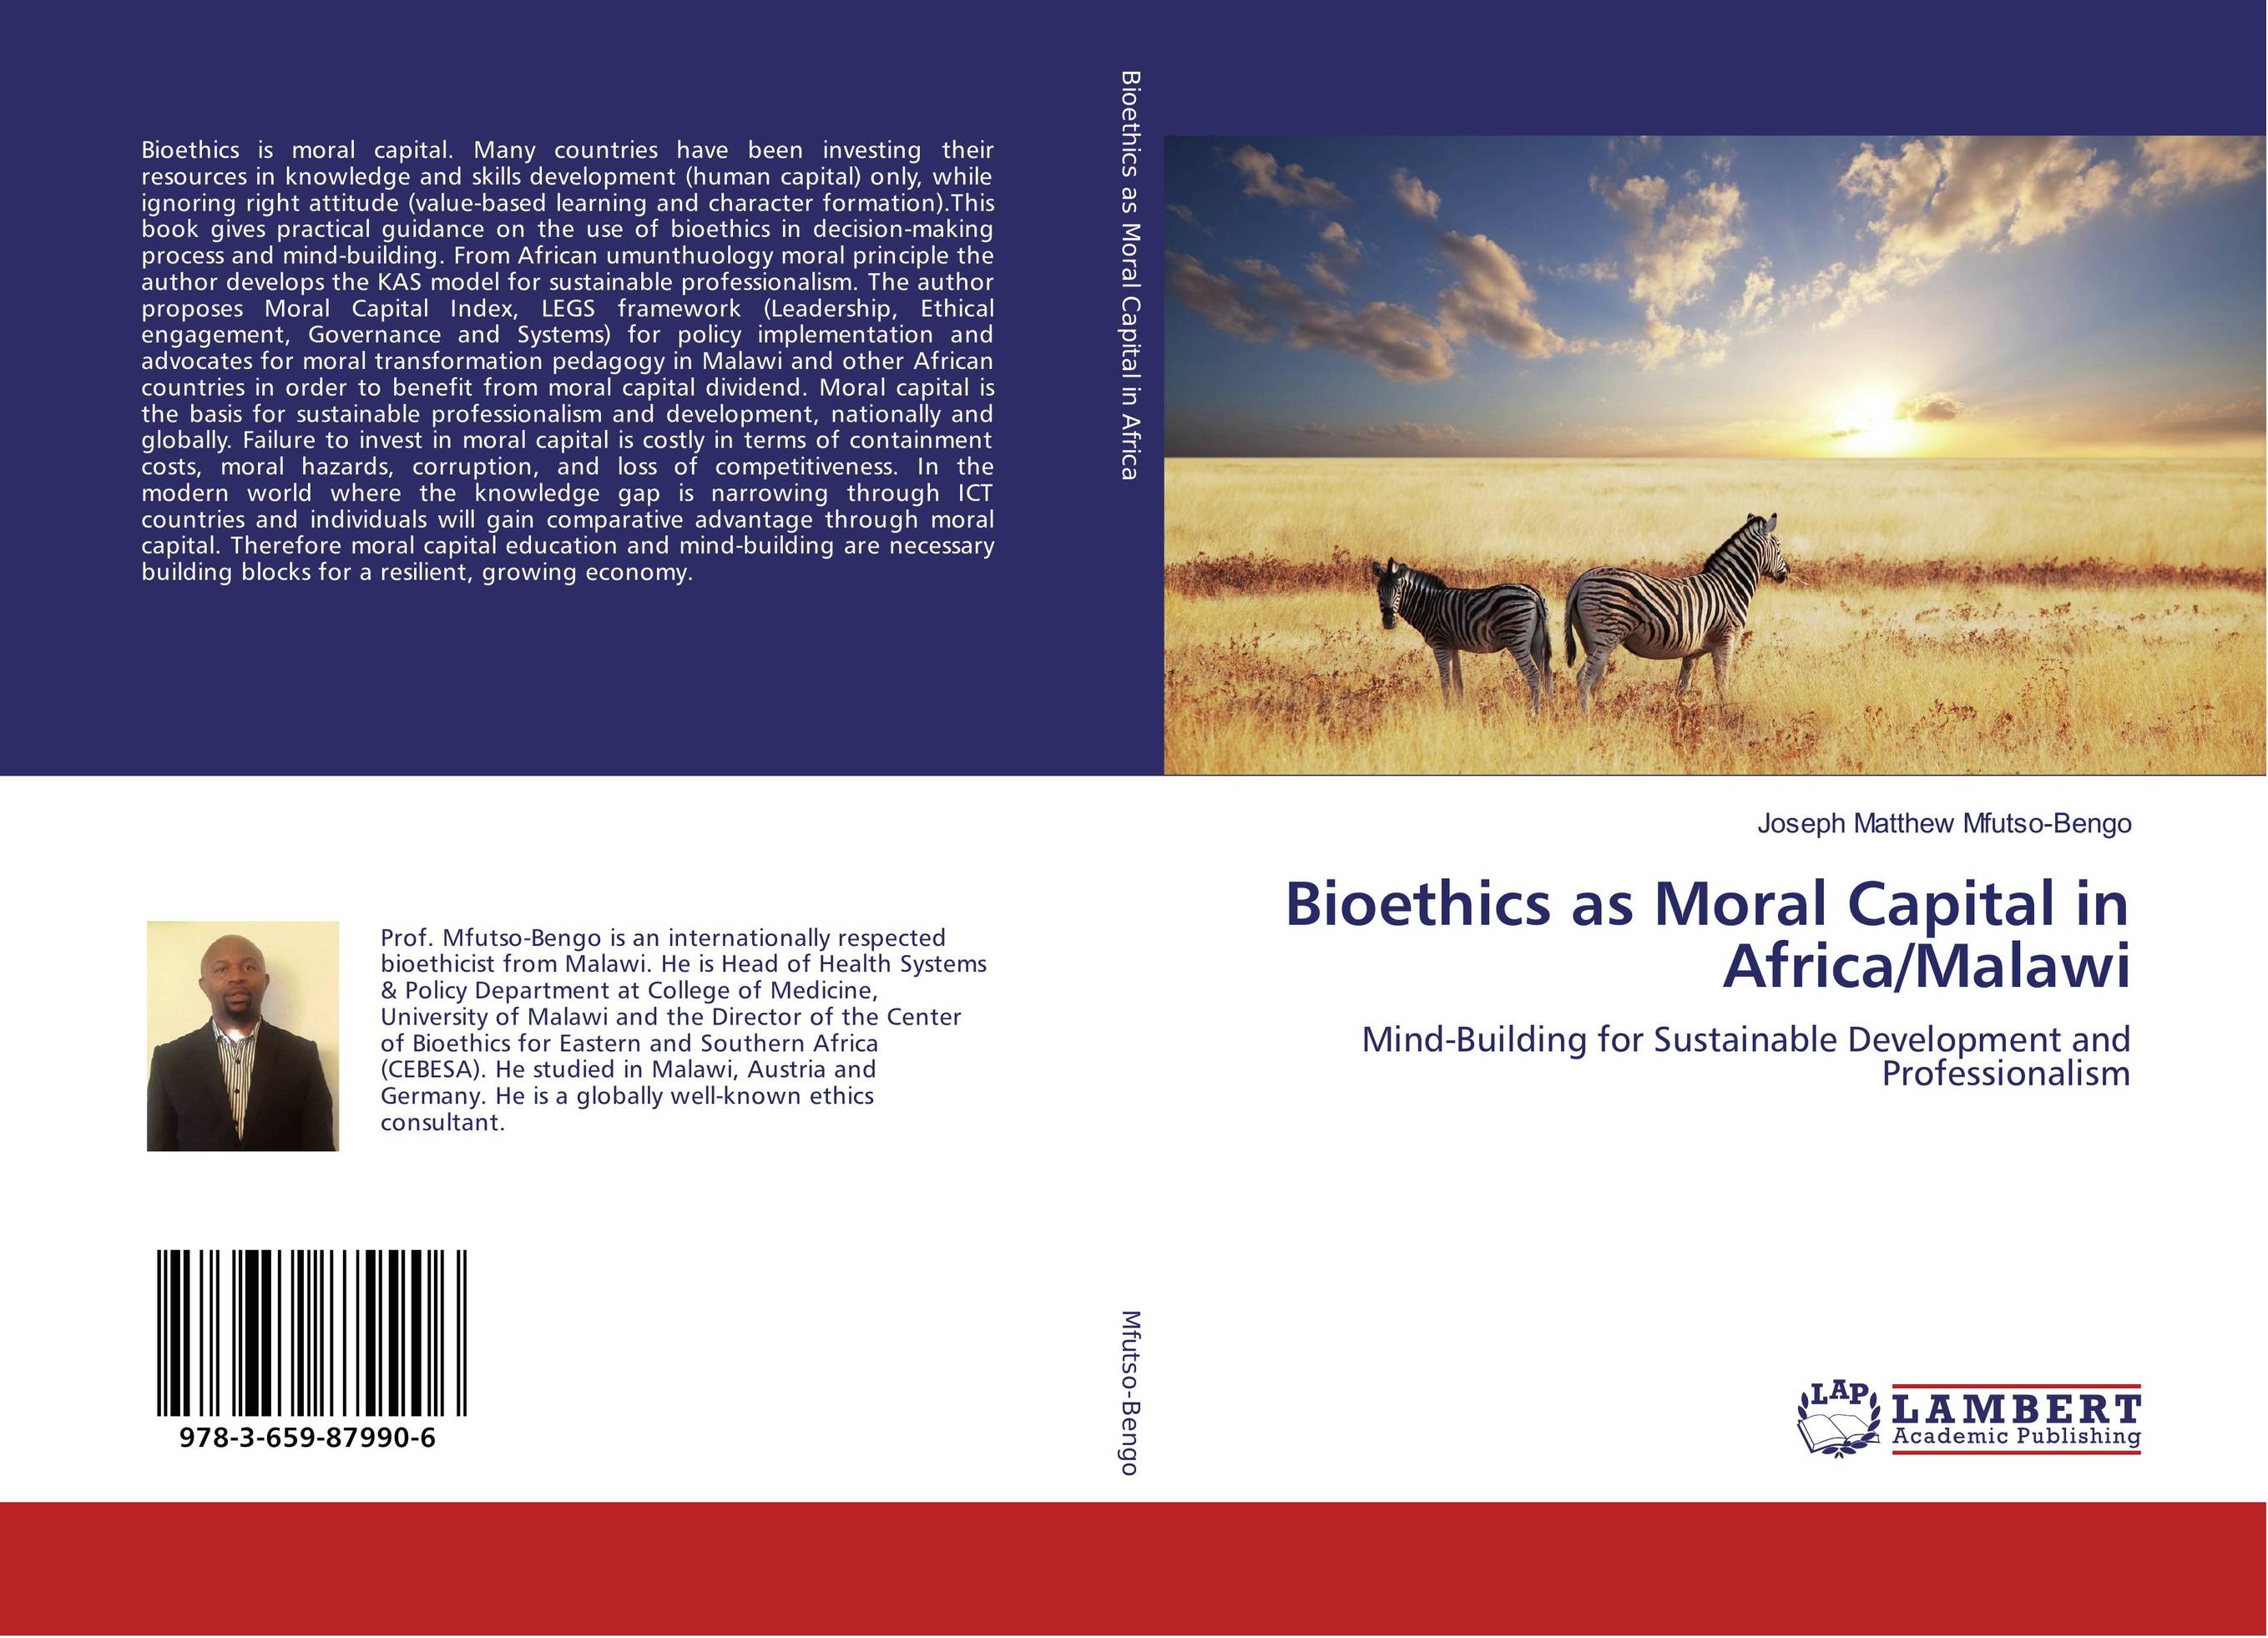 Bioethics as Moral Capital in Africa/Malawi building value through human resources